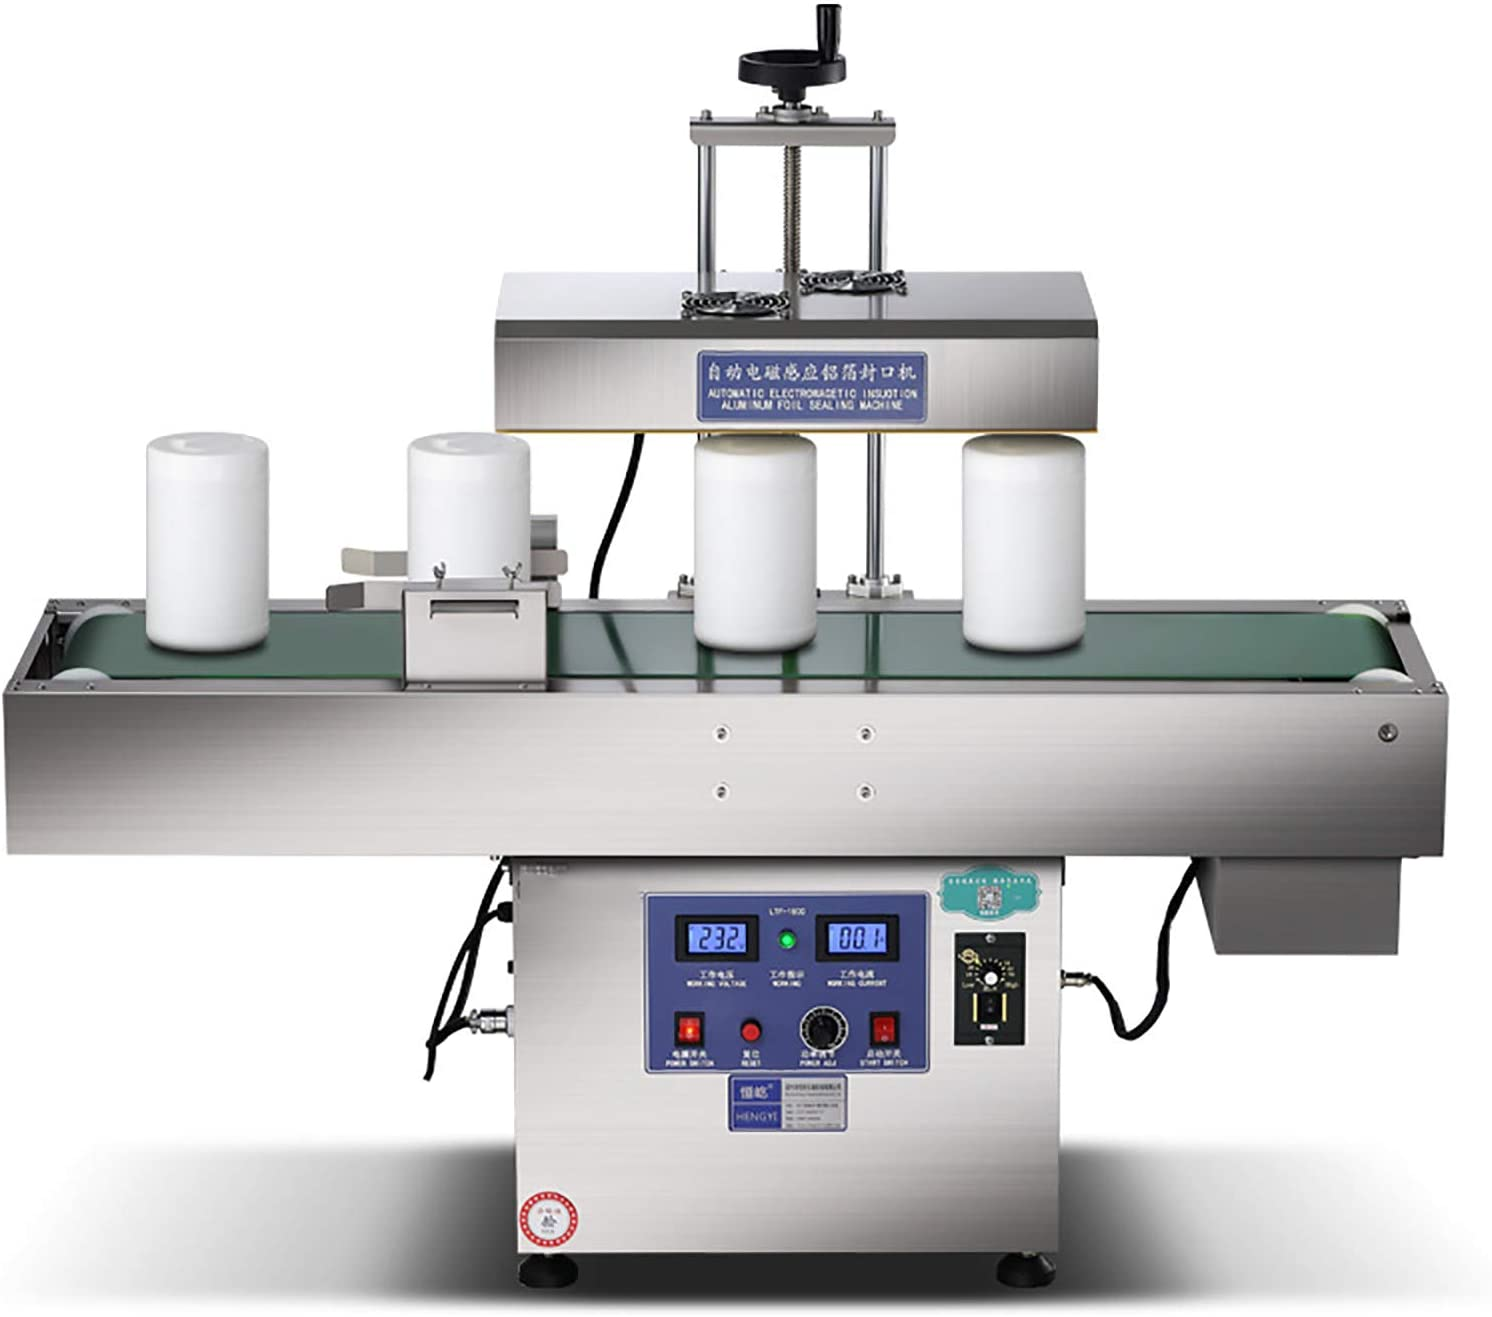 NEWTRY 15-80mm(0.6''-3.15'') Continuous Electromagnetic Induction Bottle Cap Sealer Stainless Steel Automatic Heat Jar Sealing Machine for Plastic and Glass Bottles (Bottle mouth diameter:15-80mm(0.6''-3.15''))